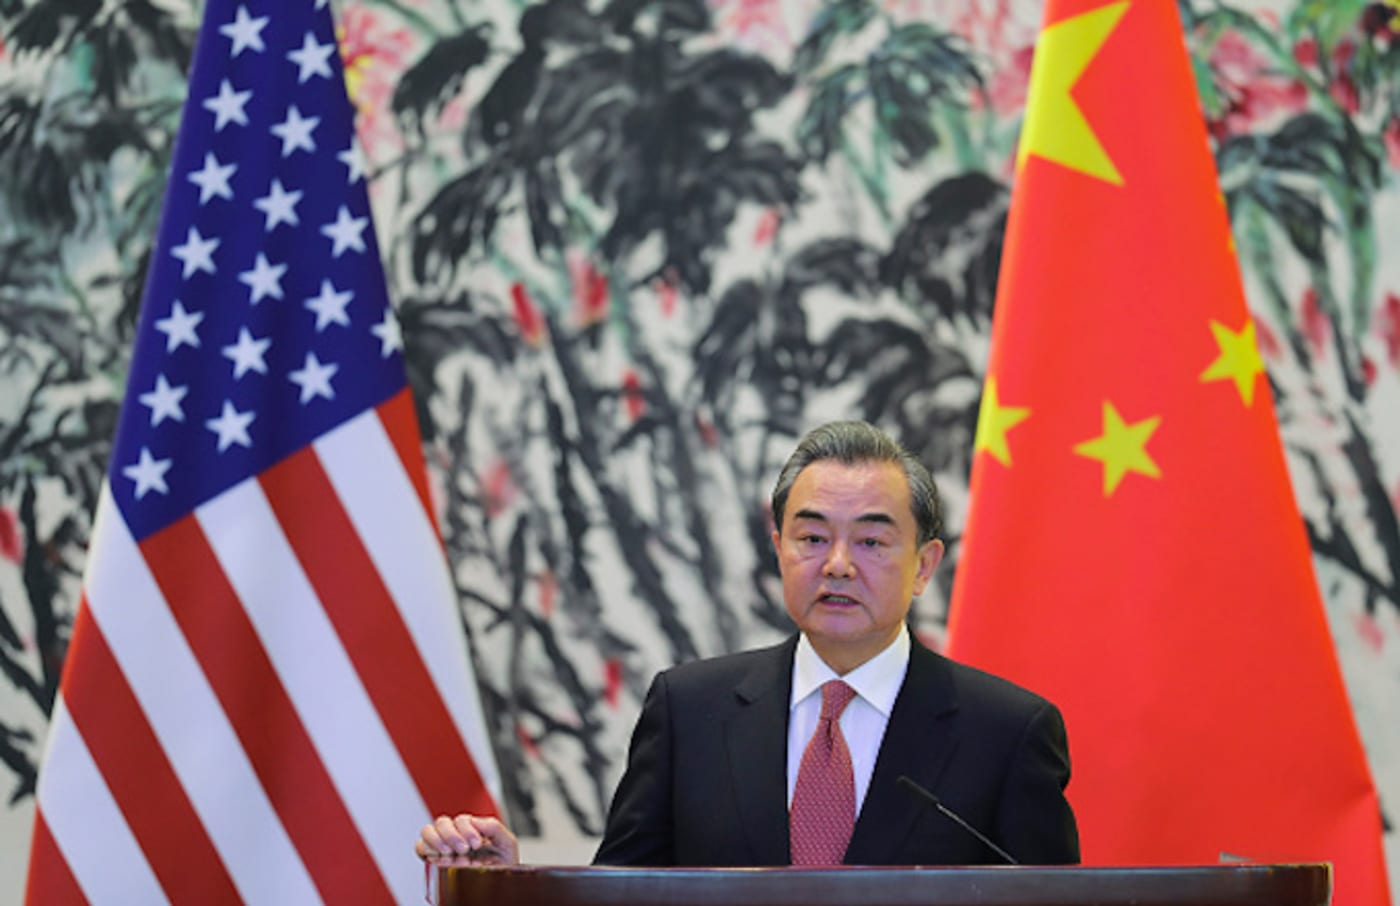 Chinese Foreign Minister Wang Yi speaks during a joint press conference